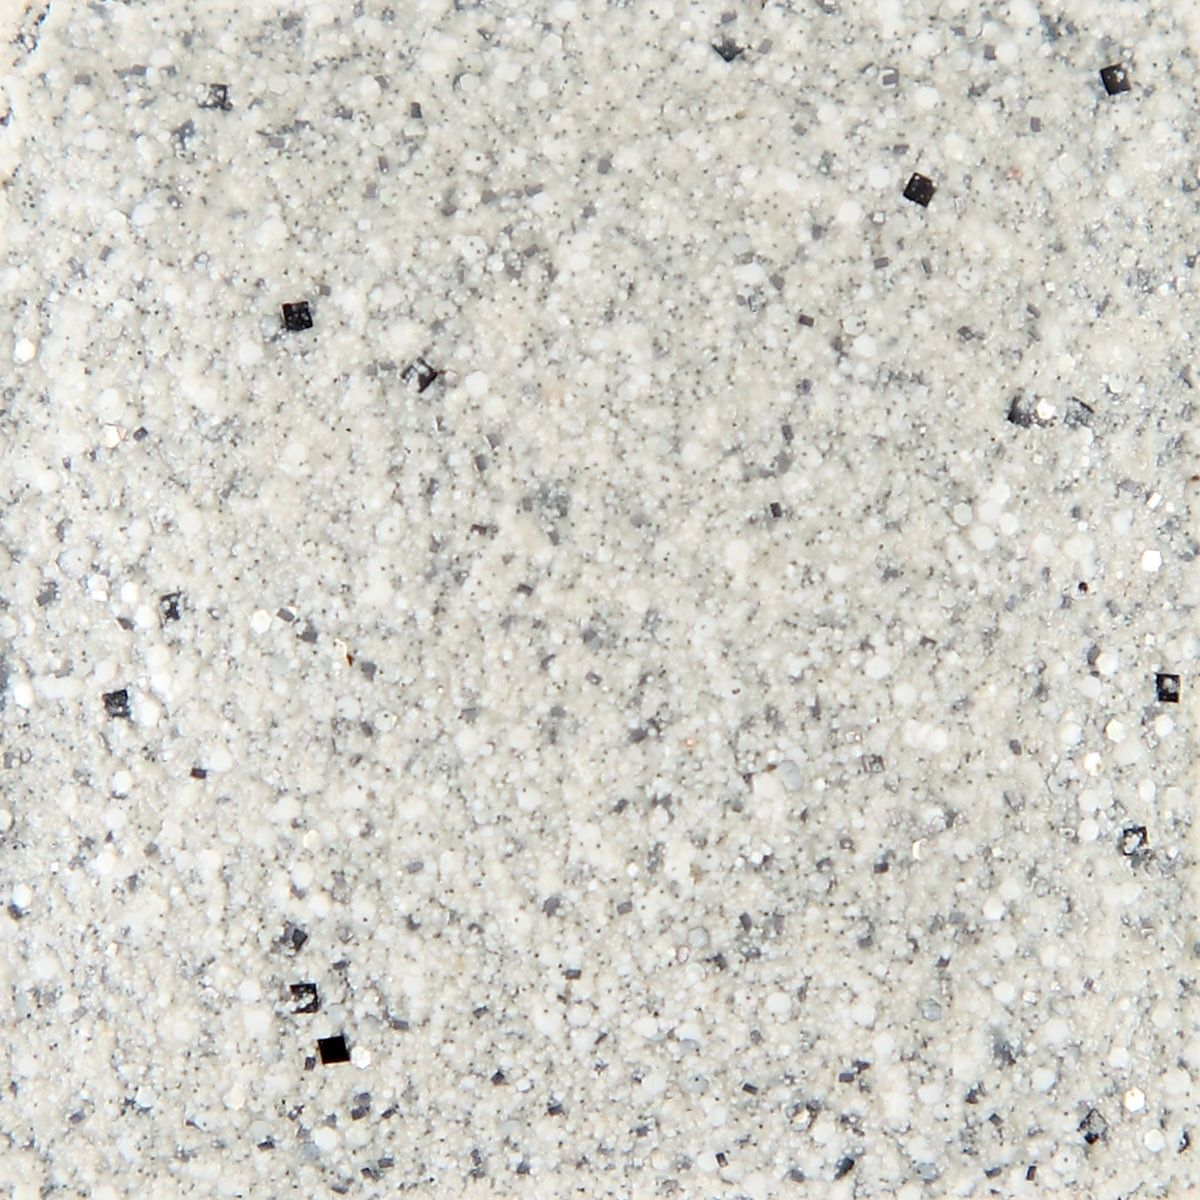 Duncan Granite Stone Isn T Just For Countertops These Days Add It To Your Projects A Rockin Effect With